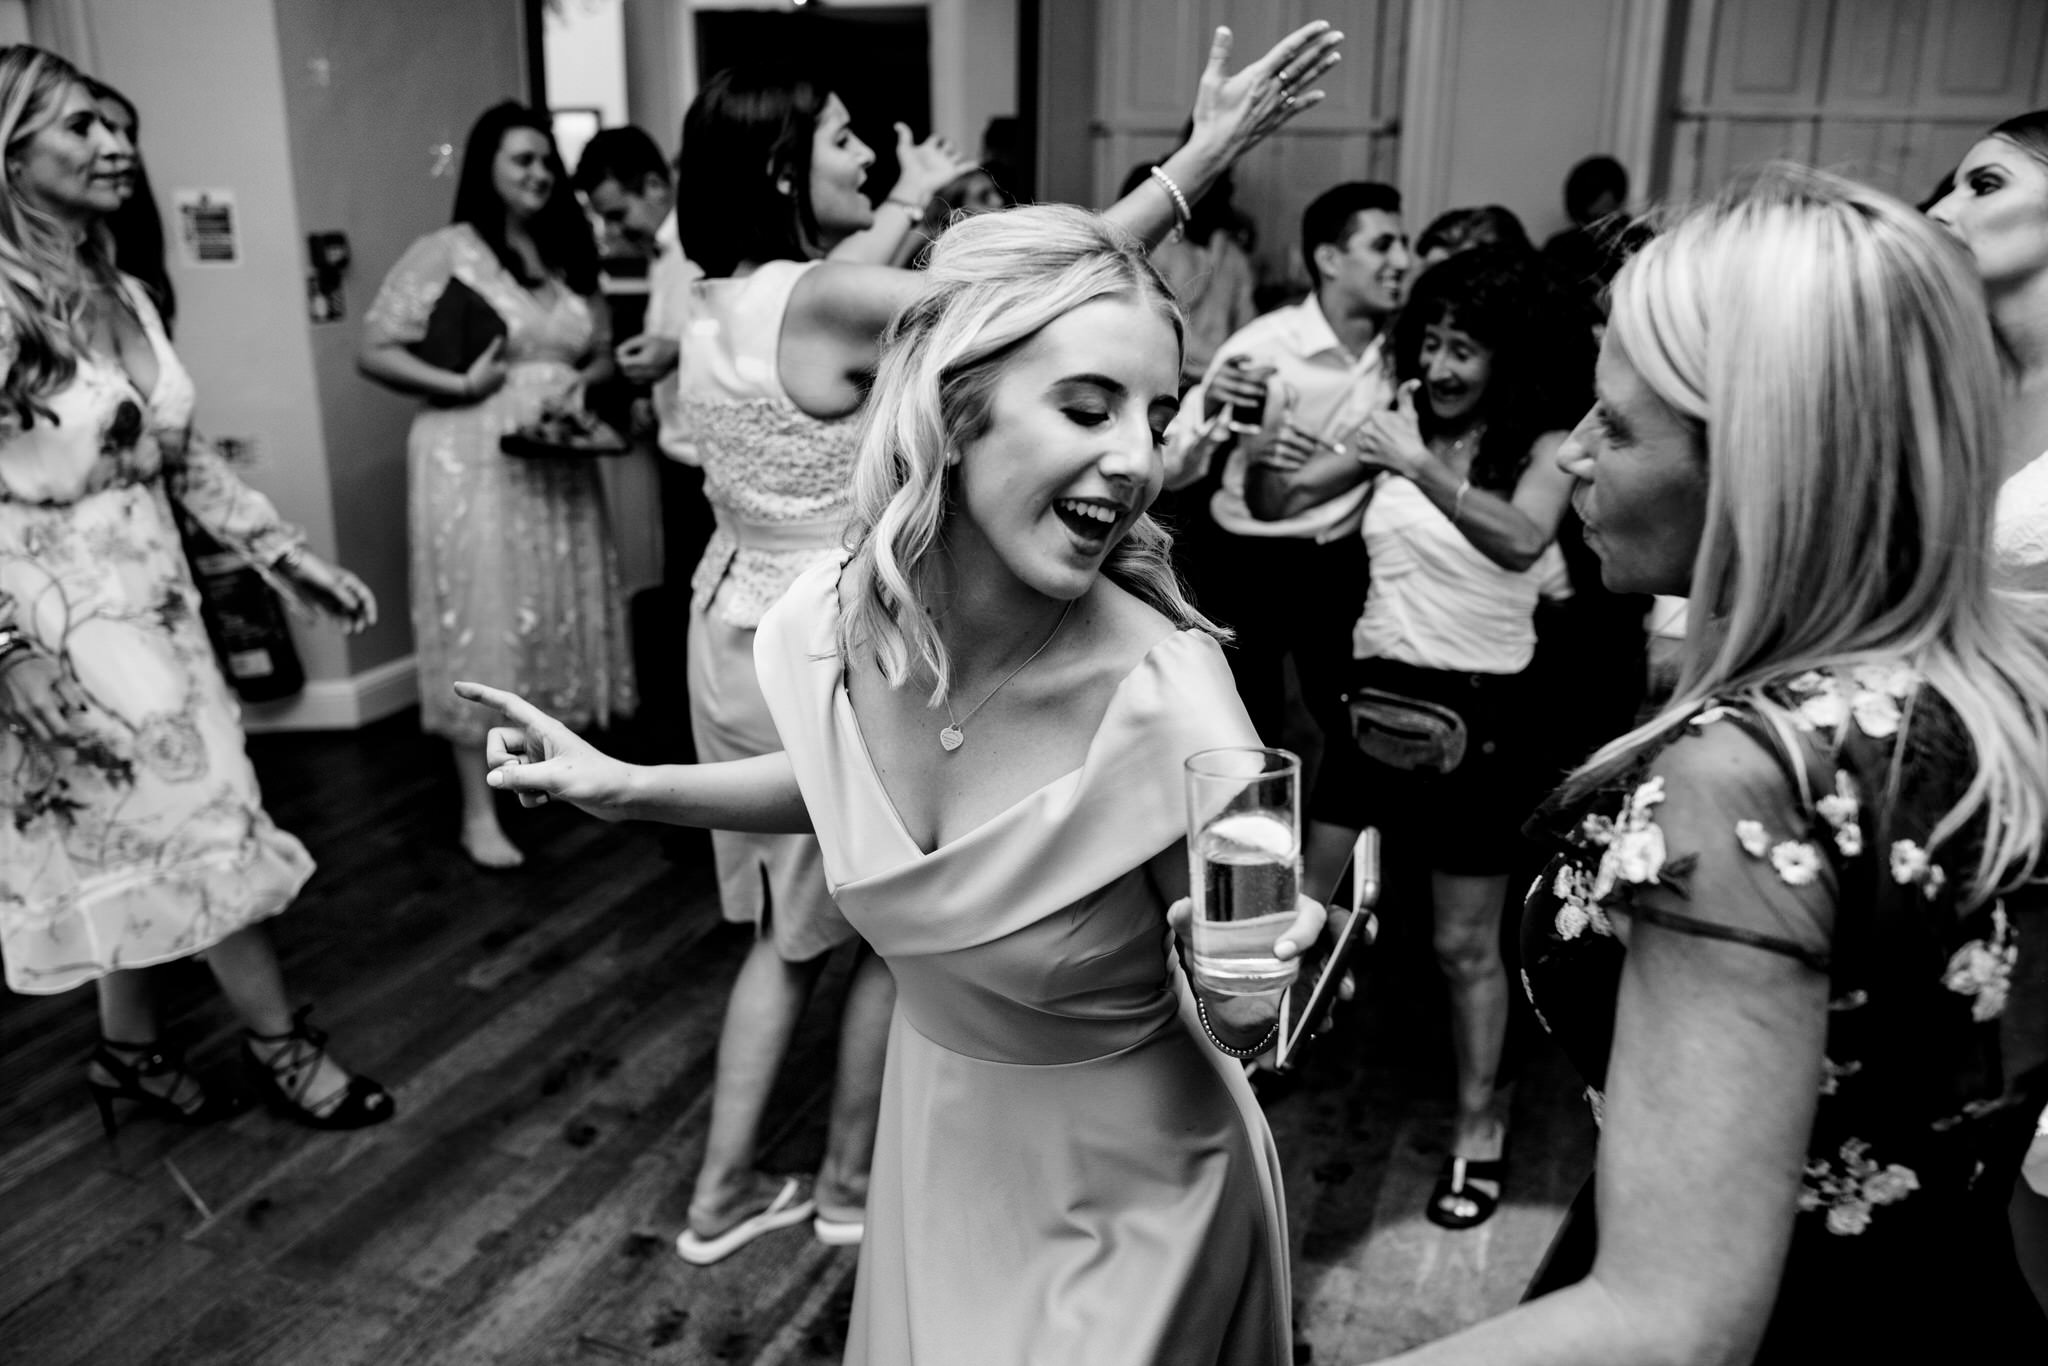 Dancing at Gosfield hall wedding